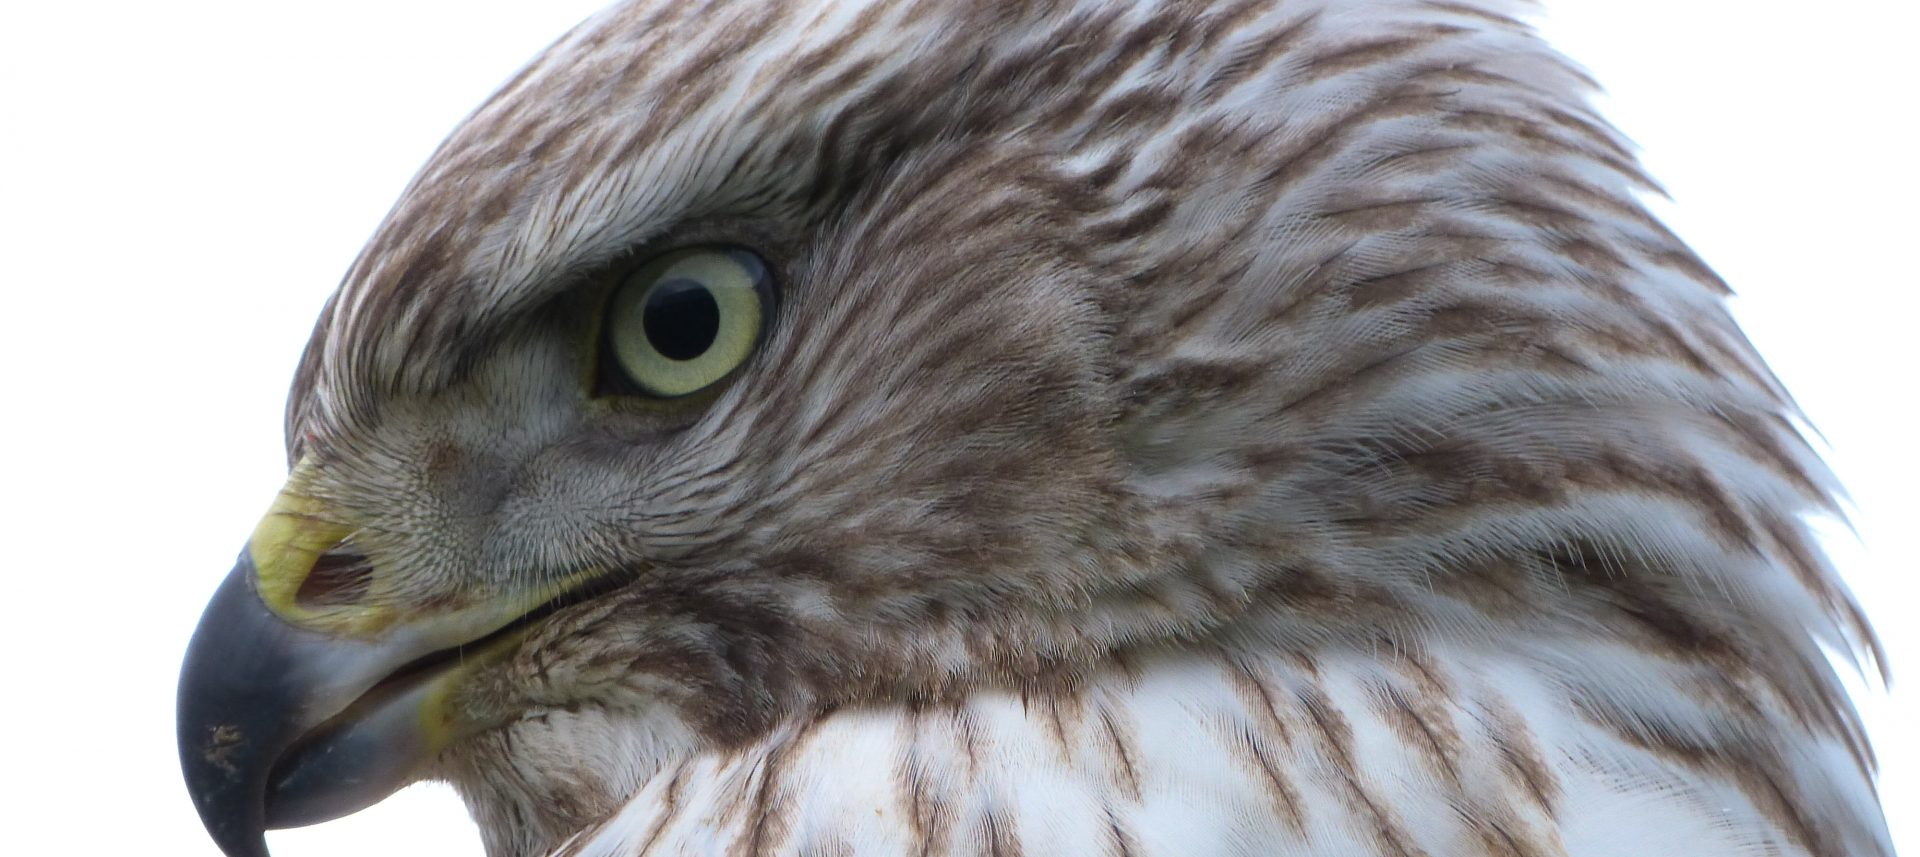 The Falconry App sponsors National Conference